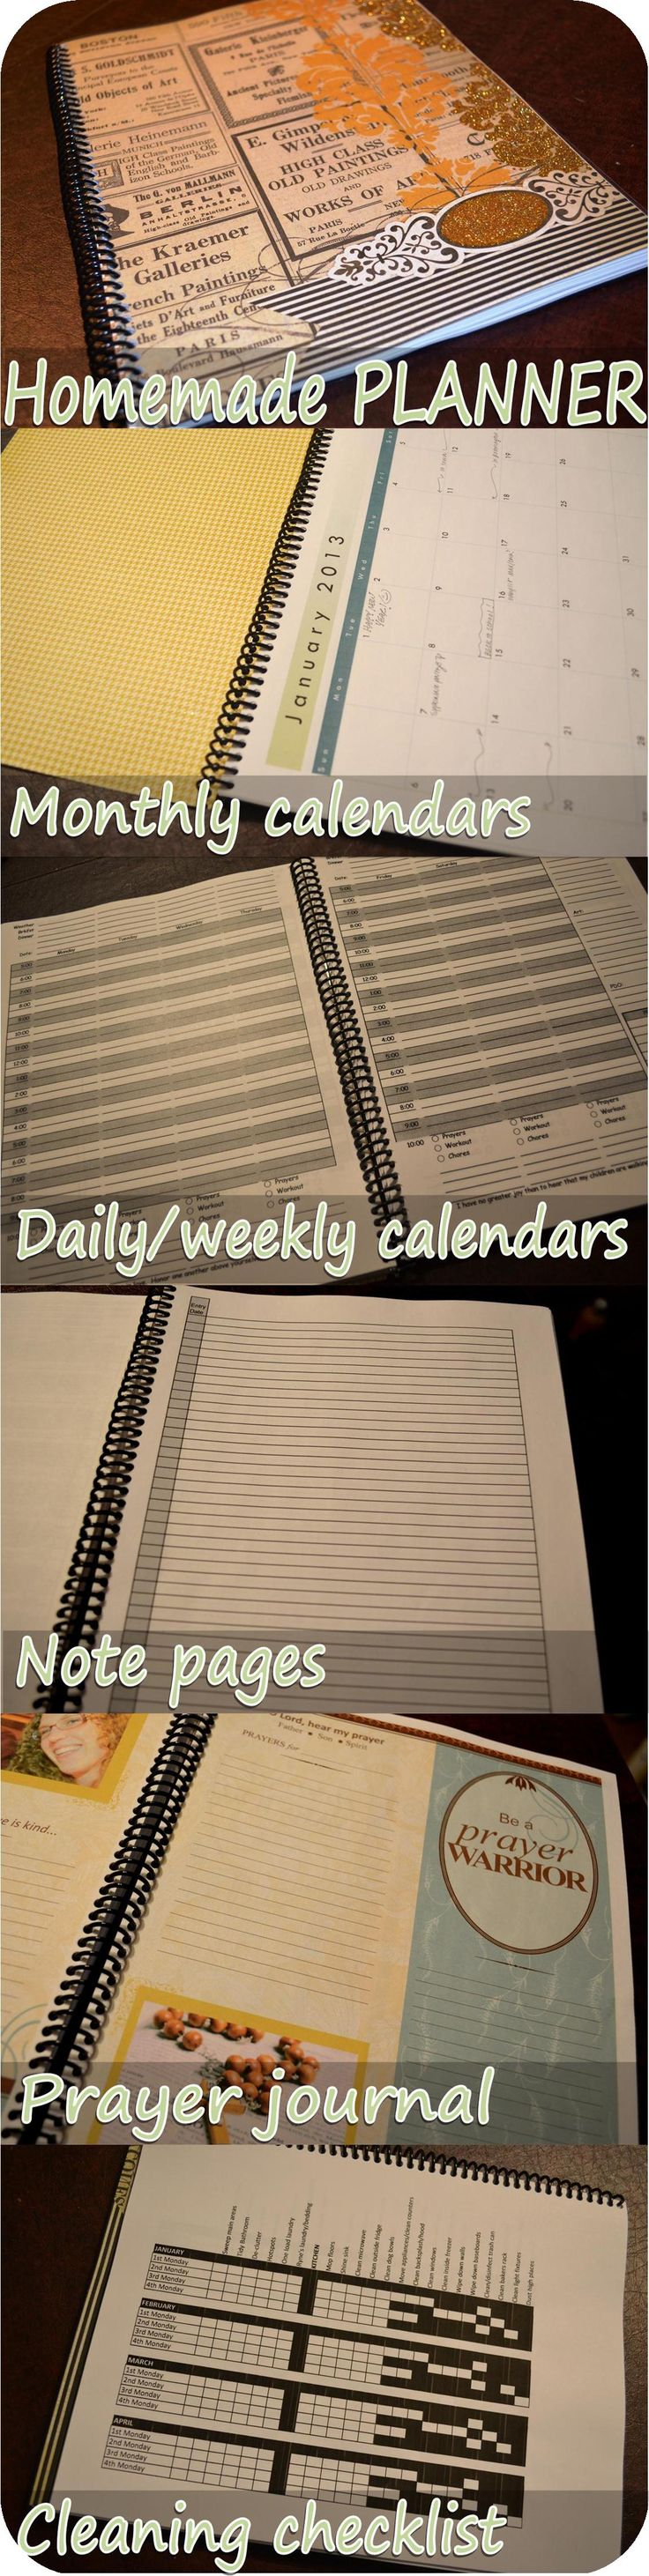 How to make a homemade planner.  Free printables.  Cleaning list, prayer journal, monthly calendars, daily/weekly pages, notepages.